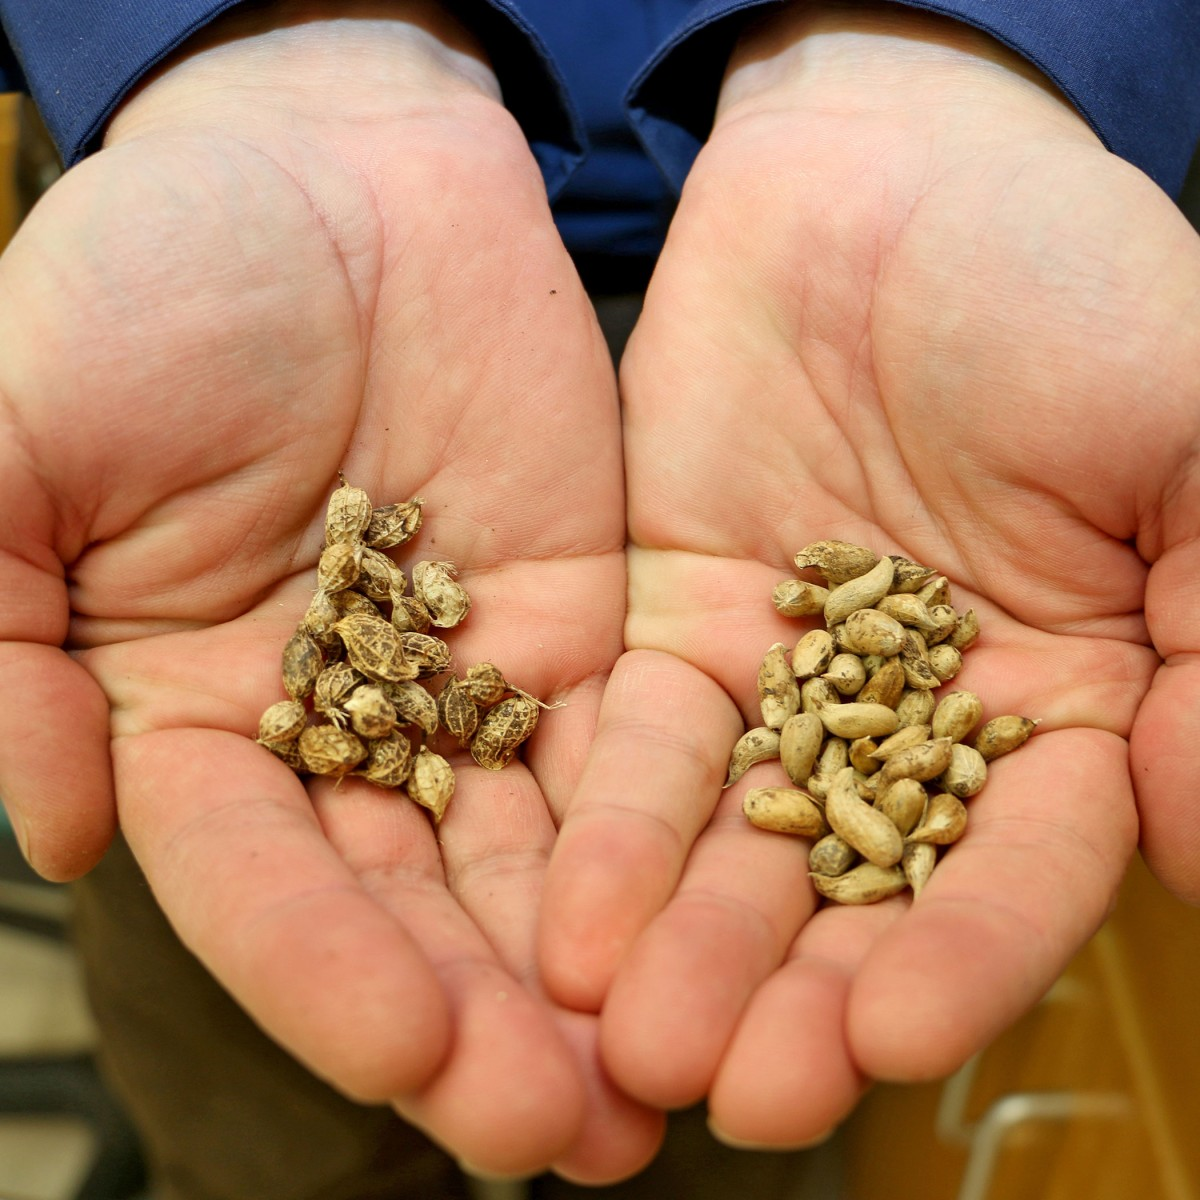 Arachis ipaensis, left, and Arachis duranensis, right, are the two species of wild peanut that crossed to provide the genetic blueprint for today's modern peanut varieties. (Credit: Merritt Melancon/University of Georgia)